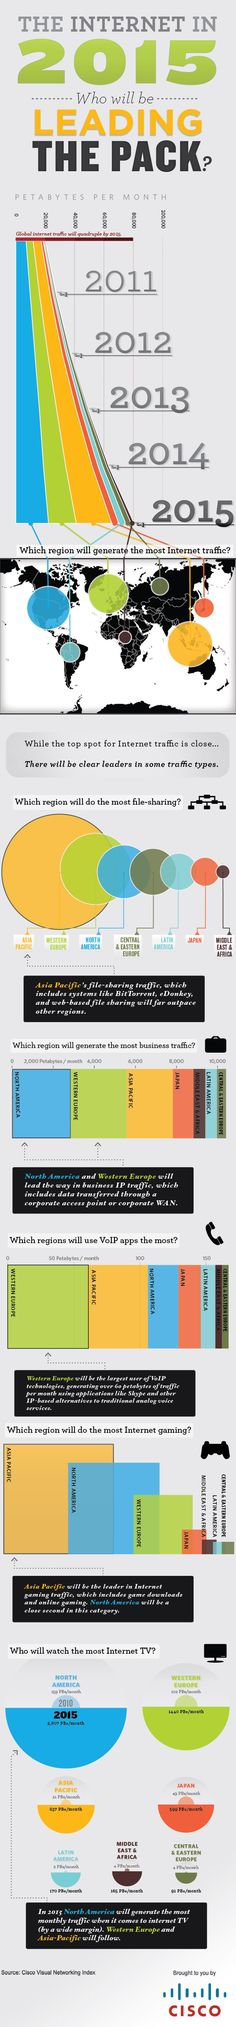 What The Internet Will Look Like in 2015 [Infographic]